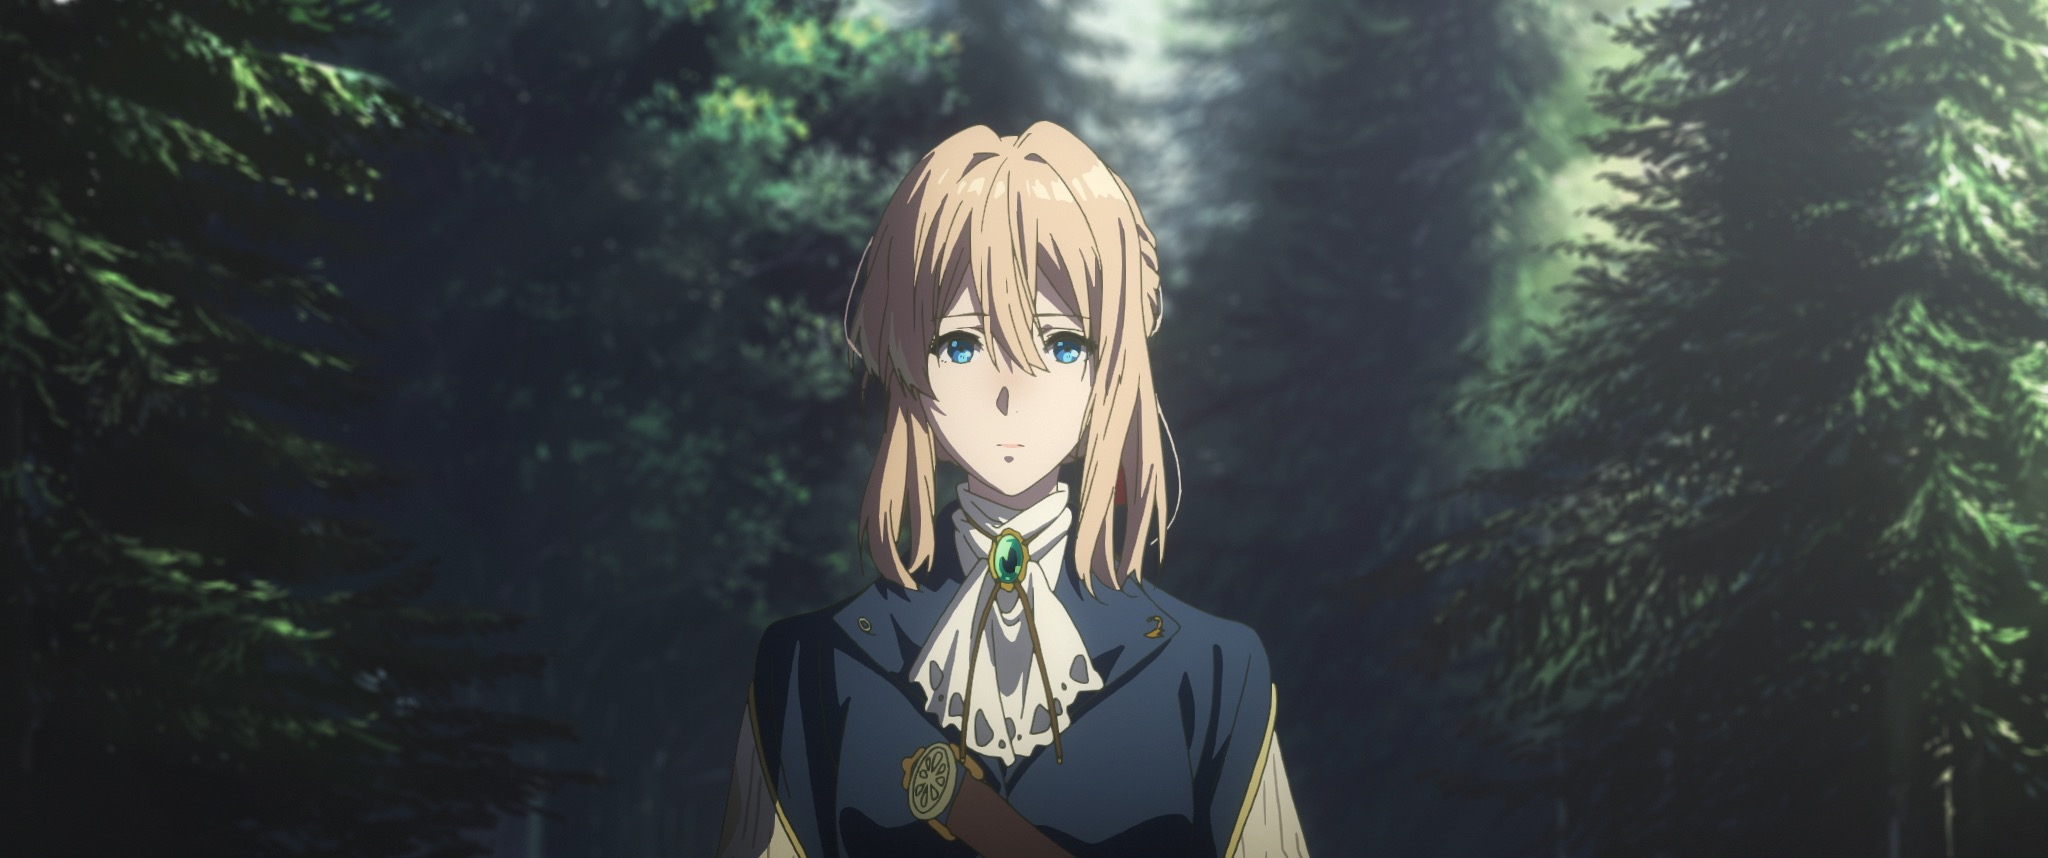 Violet Evergarden Eternity and the Auto Memories Doll - DrCommodore